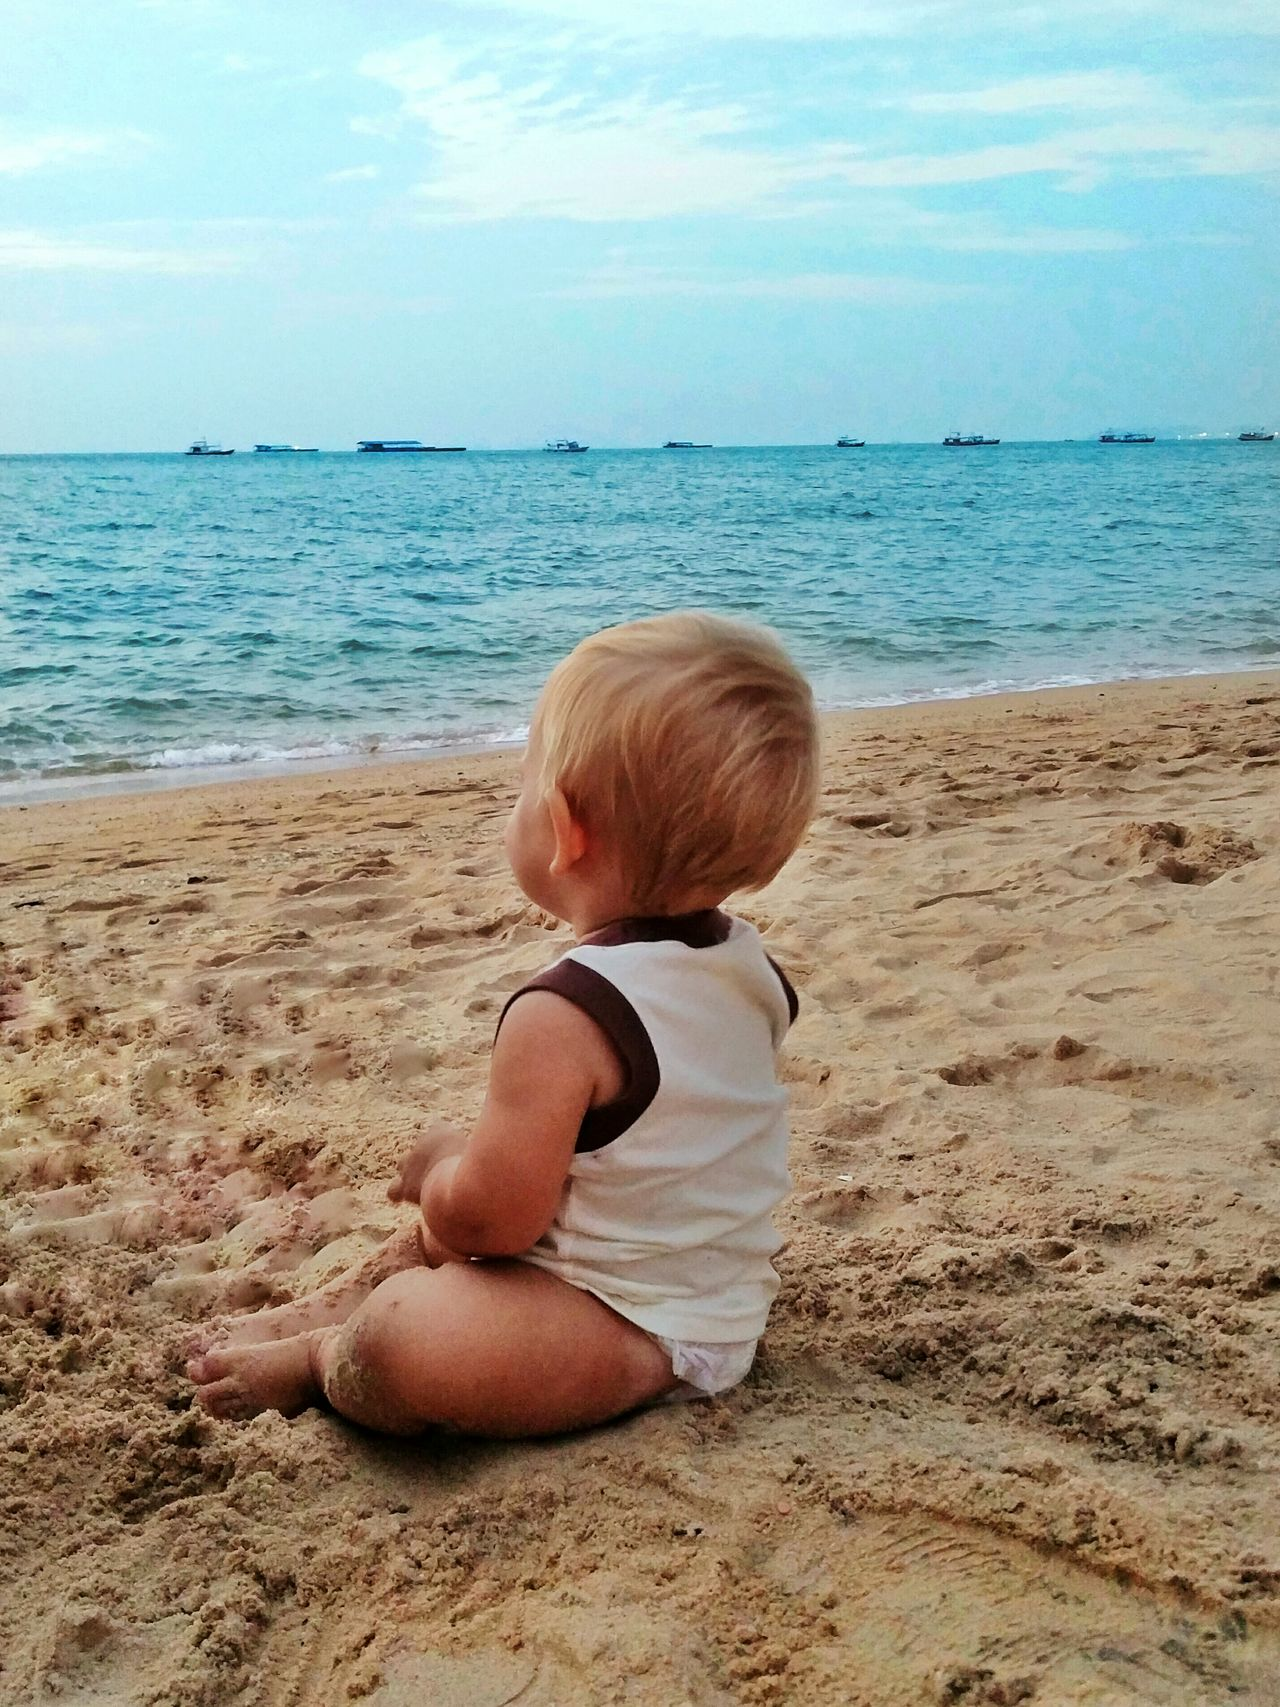 Spotted In Thailand Pattaya Pattaya Beach Best EyeEm Shot Baby On The Beach Beach Sand Waves EyeEm Best Shots The KIOMI Collection Blue Wave Showcase April Long Goodbye